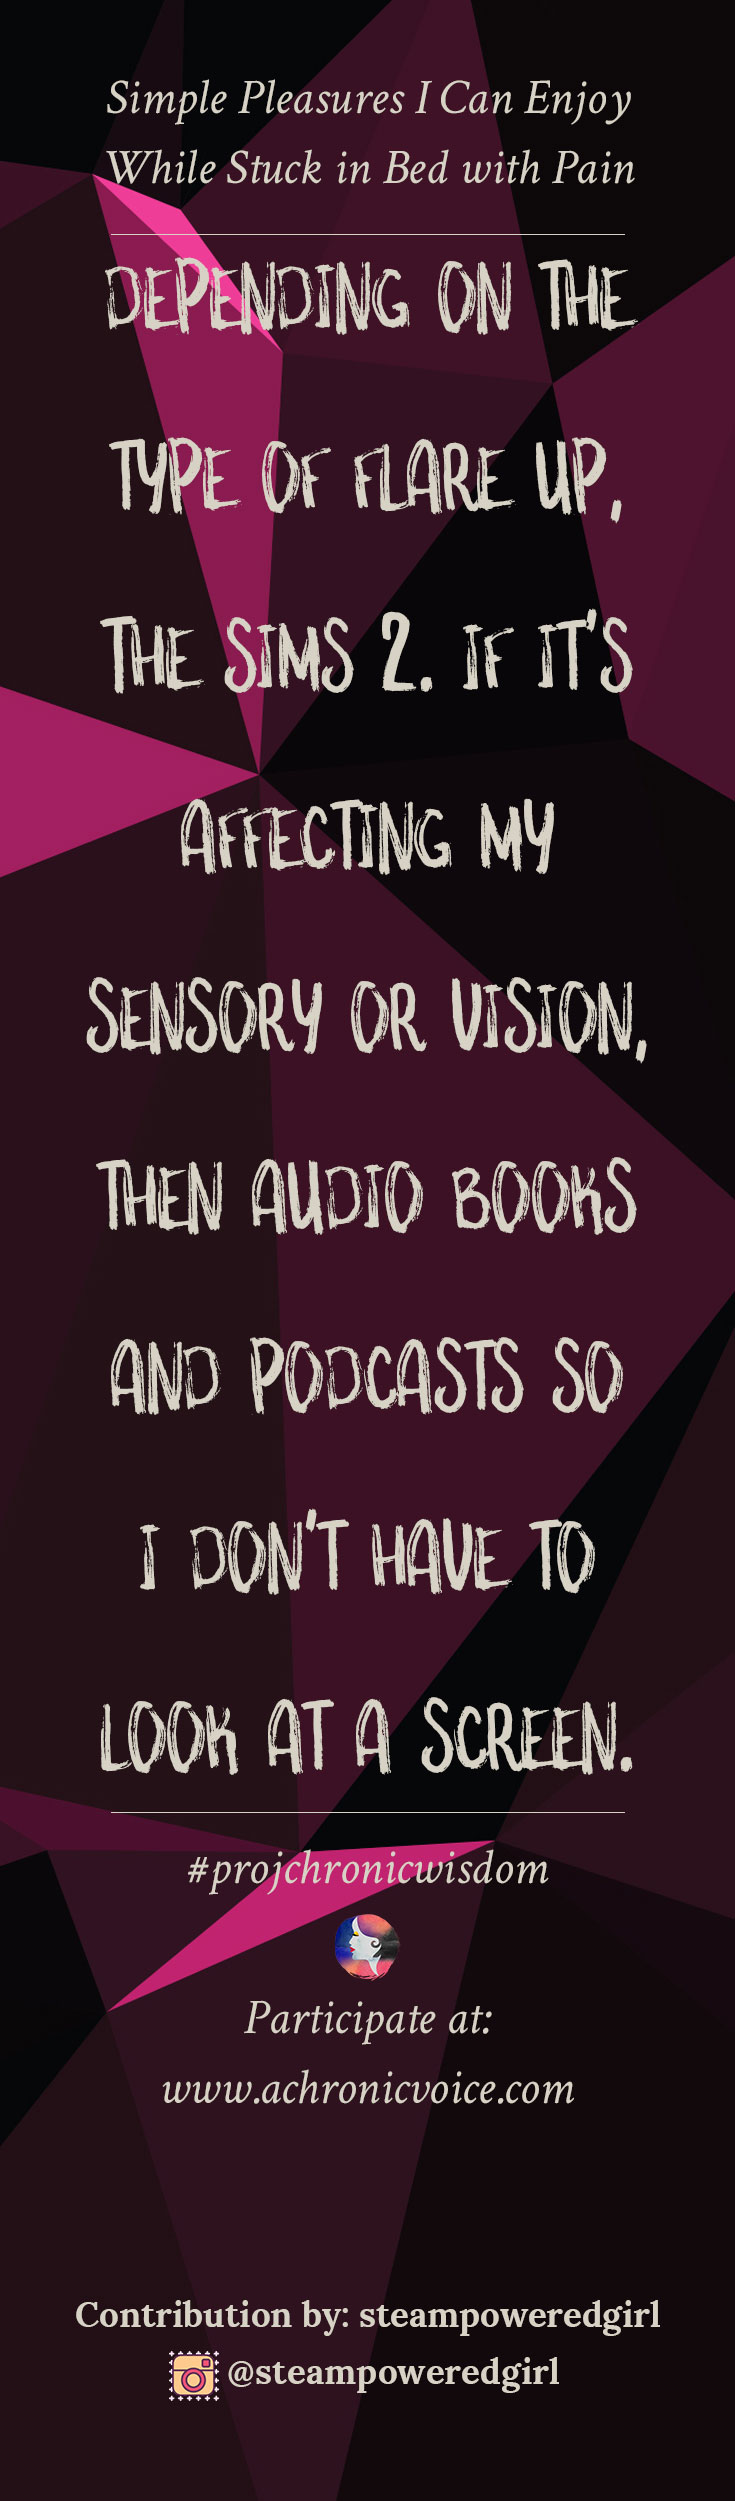 """""""Depending on the type of flare up, The Sims 2. If it's affecting my sensory or vision, then audio books and podcasts so I don't have to look at a screen."""" - steampoweredgirl 